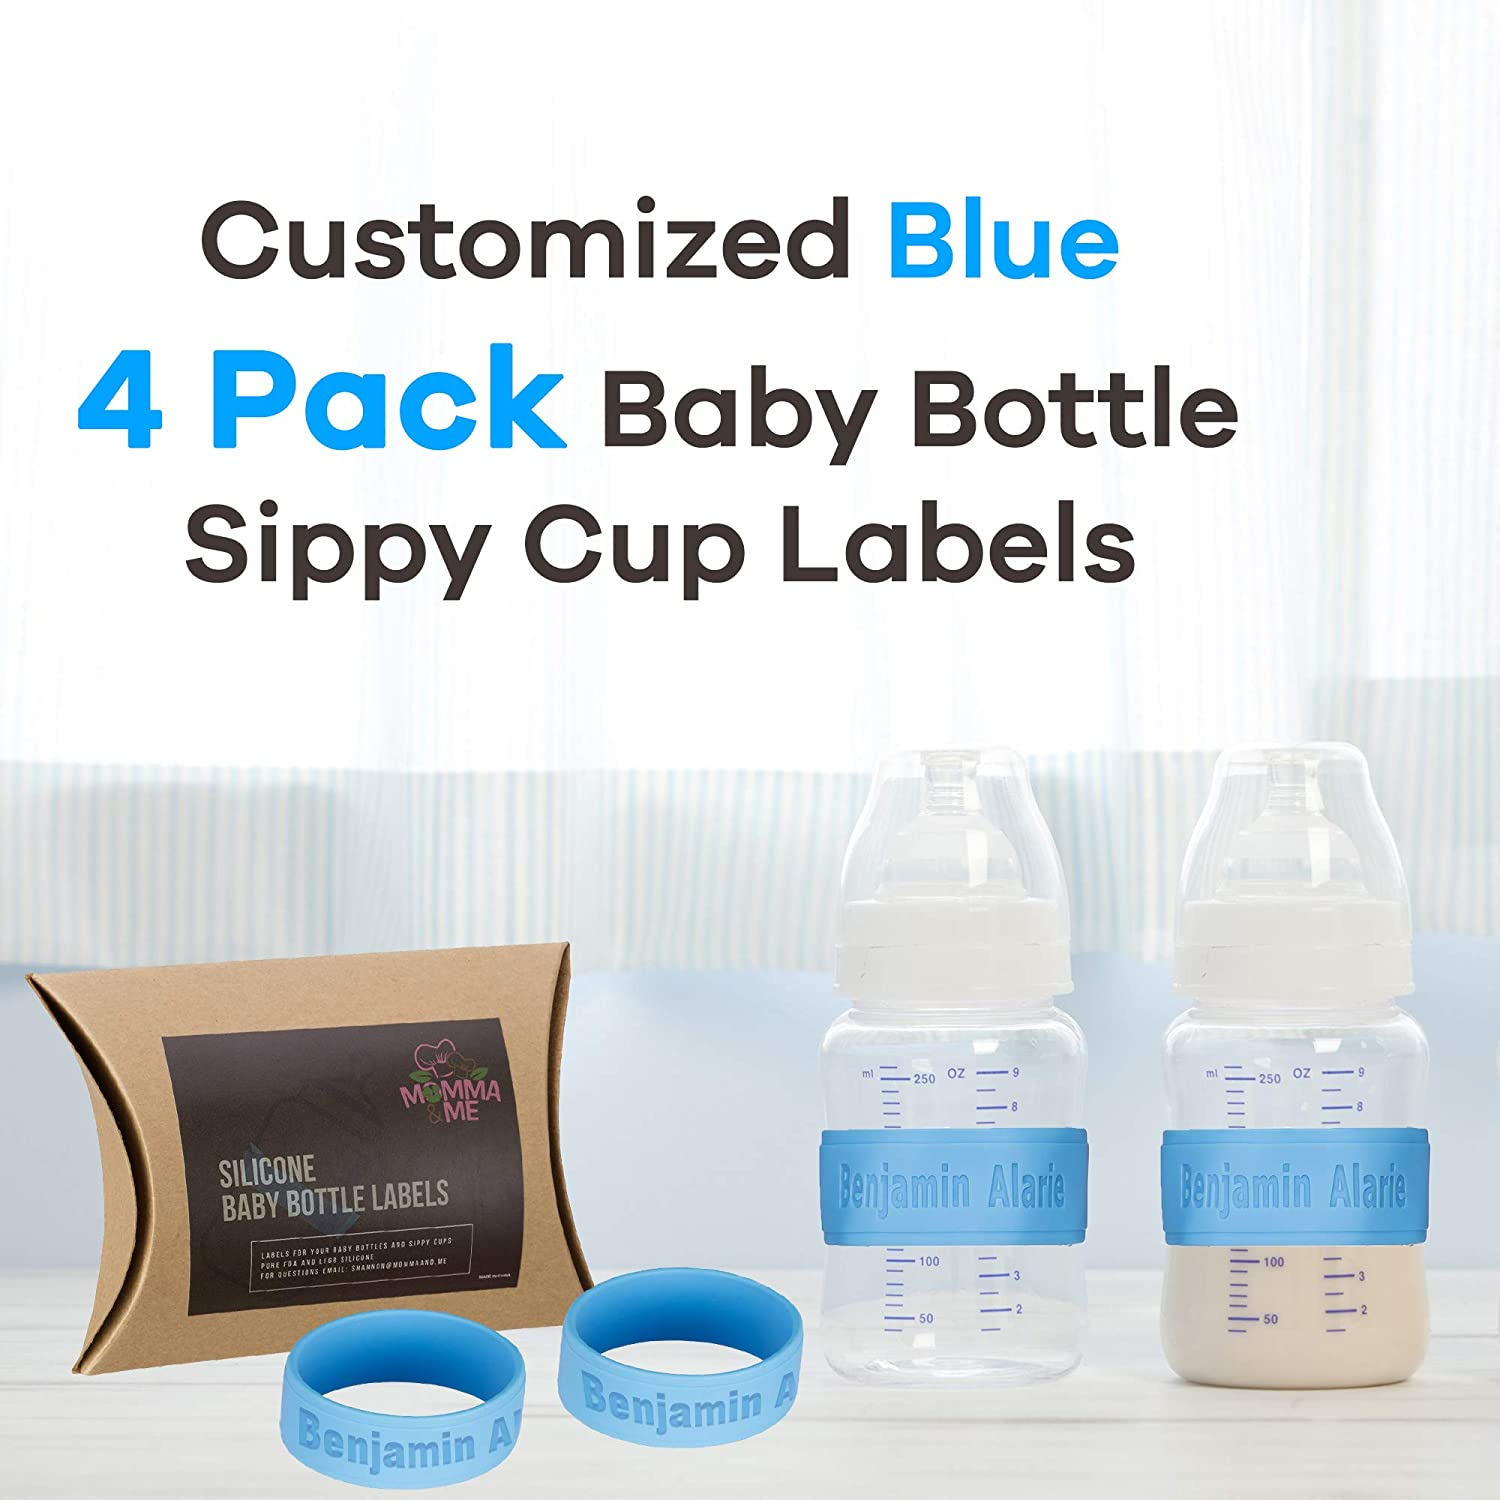 Custom Baby Bottle Formula Name Decals Stickers Personalized Free Shipping!